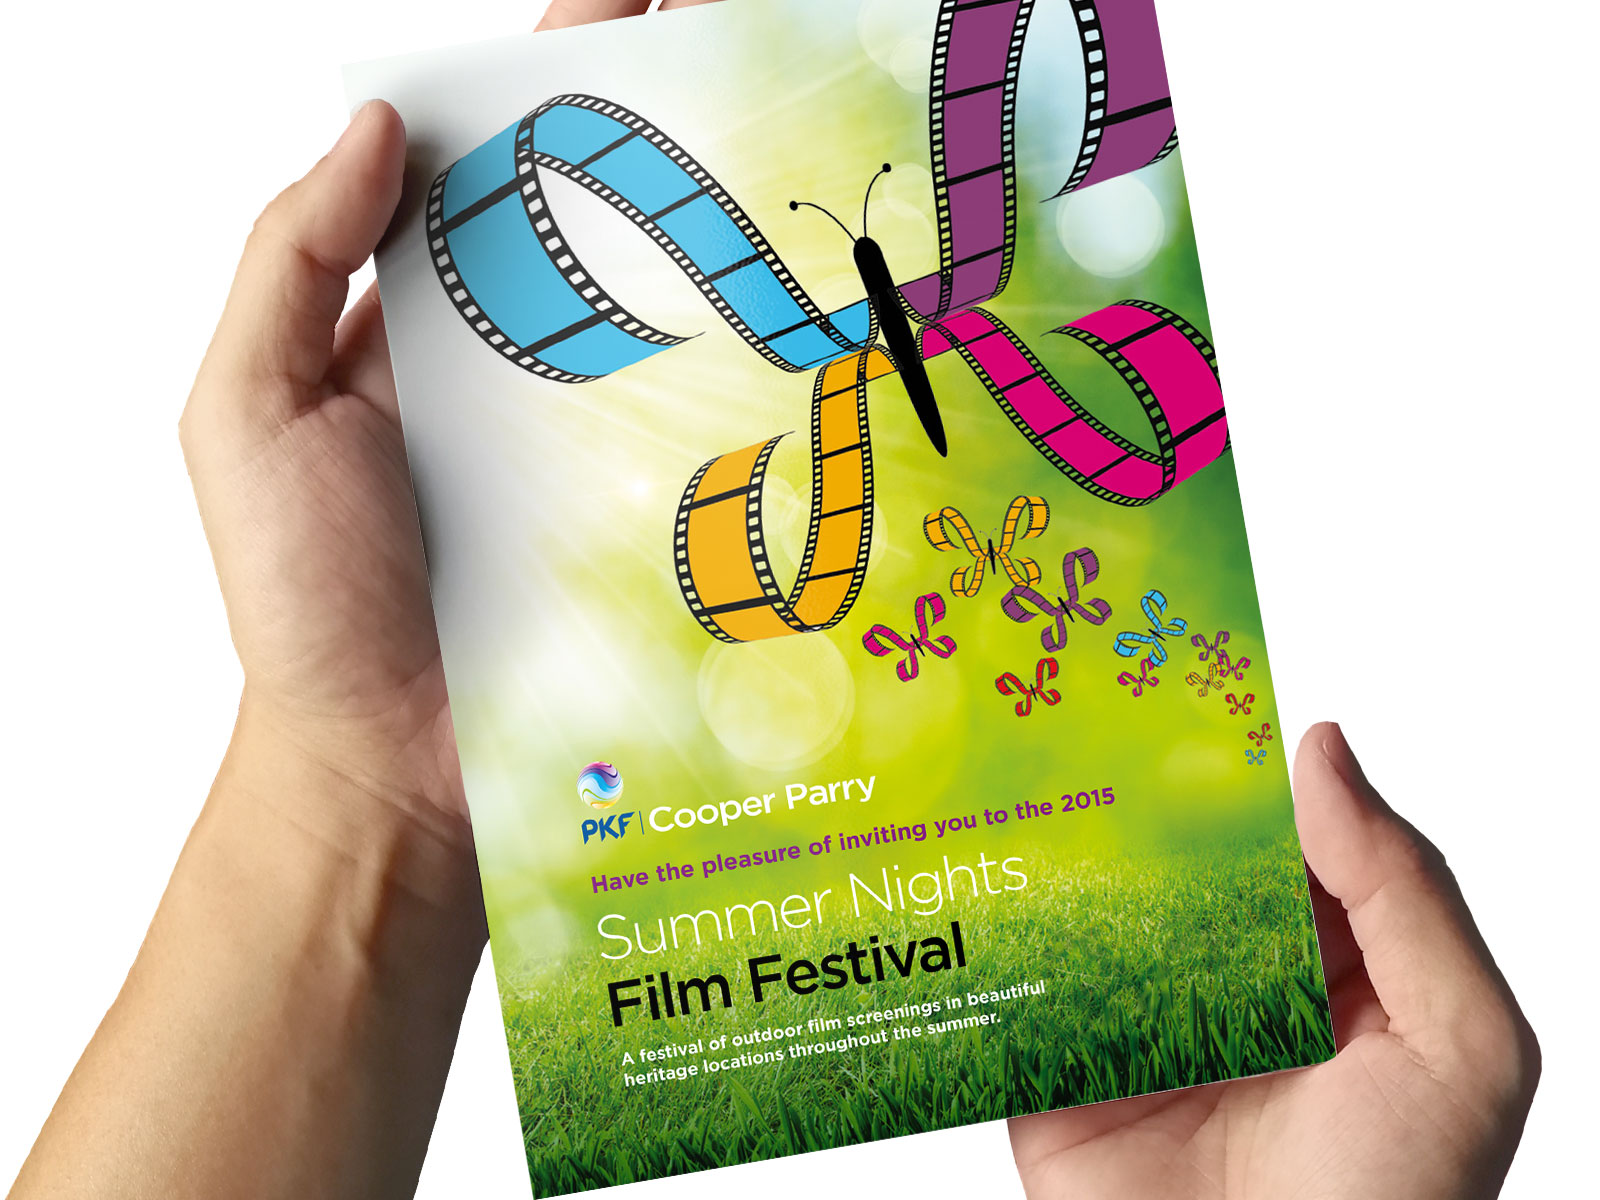 Film-Festival-invite-design-PKF